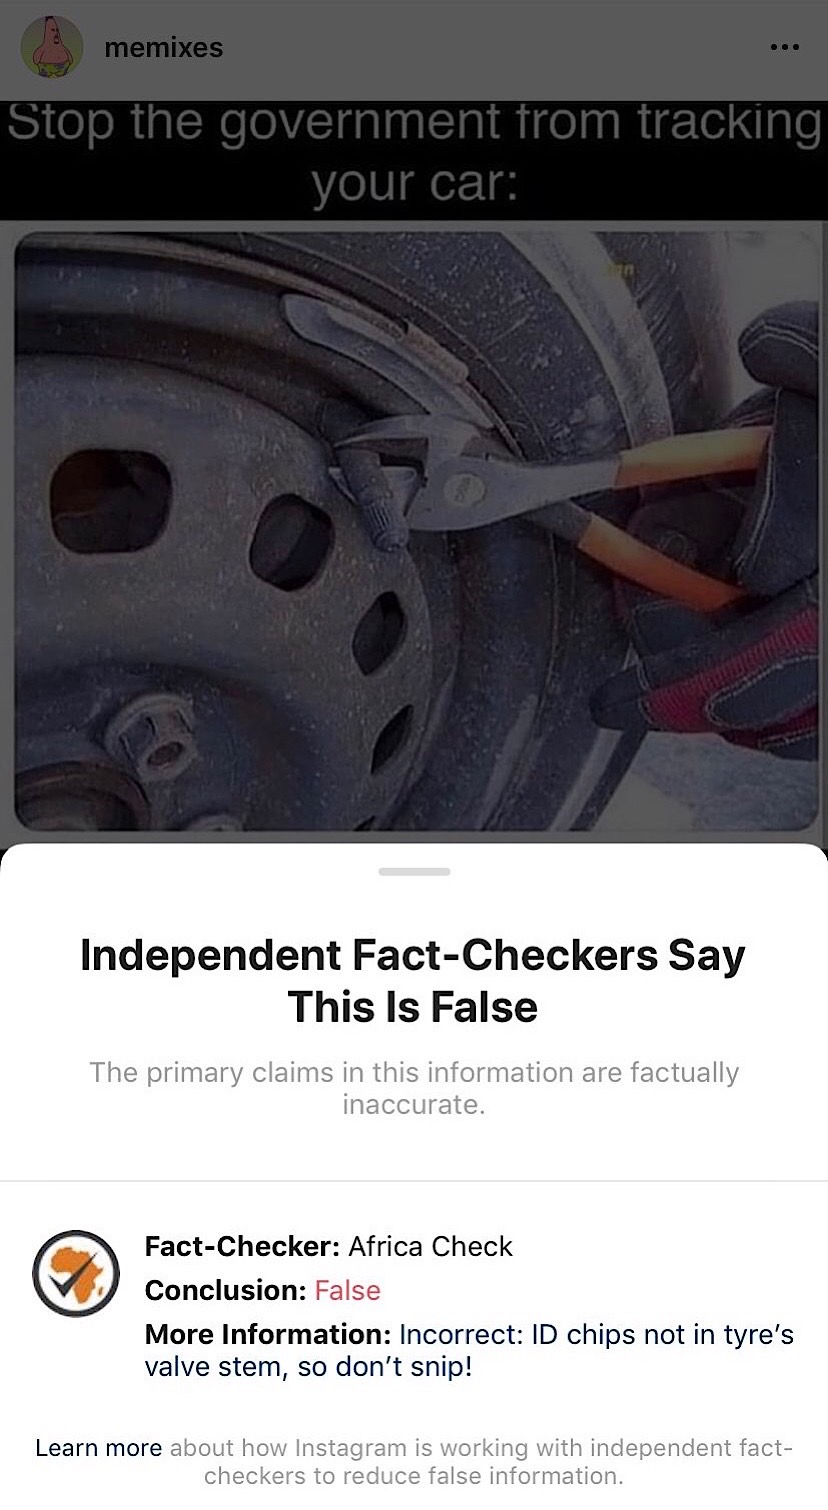 "A car tire meme that's been fact-checked, labeled false, and hidden by Instagram (Instagram - <a href=""https://www.instagram.com/memixes/"">@memixes</a>)"